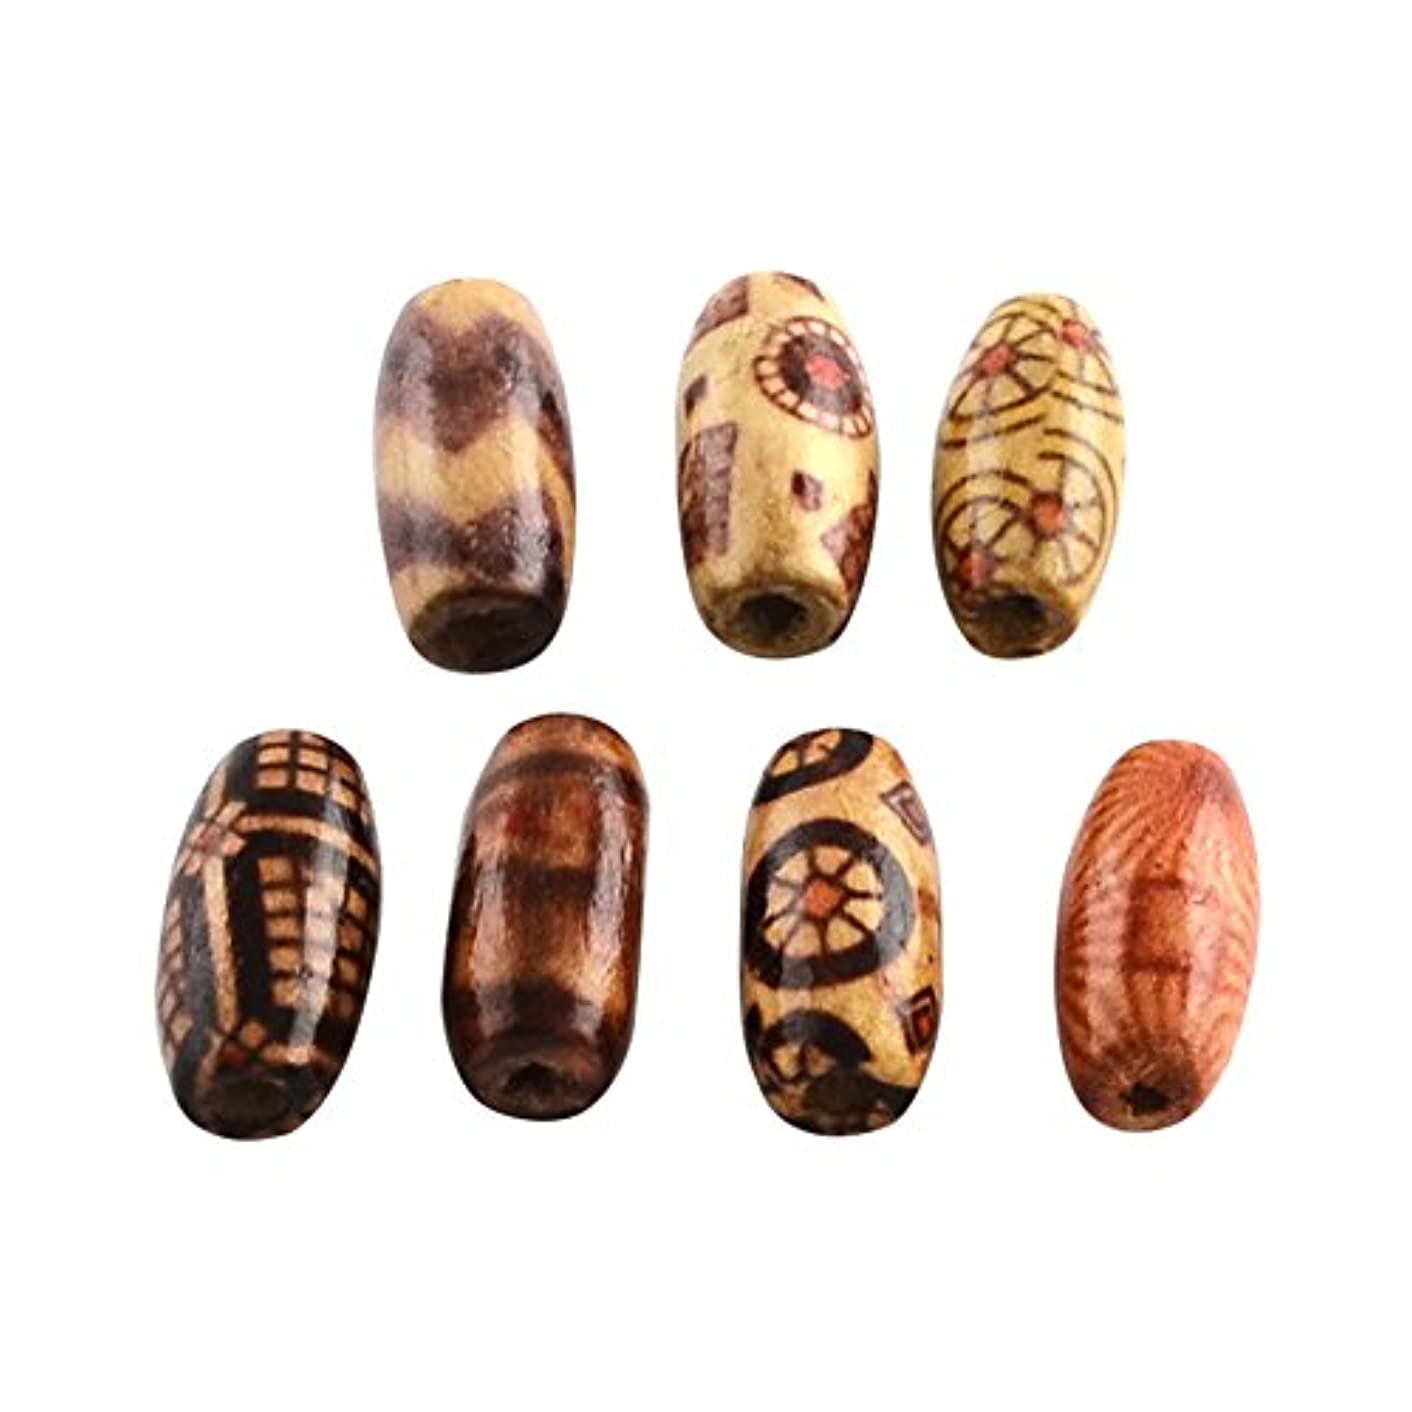 NBEADS 1000g Printed Wood Beads, Oval, Mixed Color, 15x7mm, Hole: 3mm; About 4165pcs/1000g